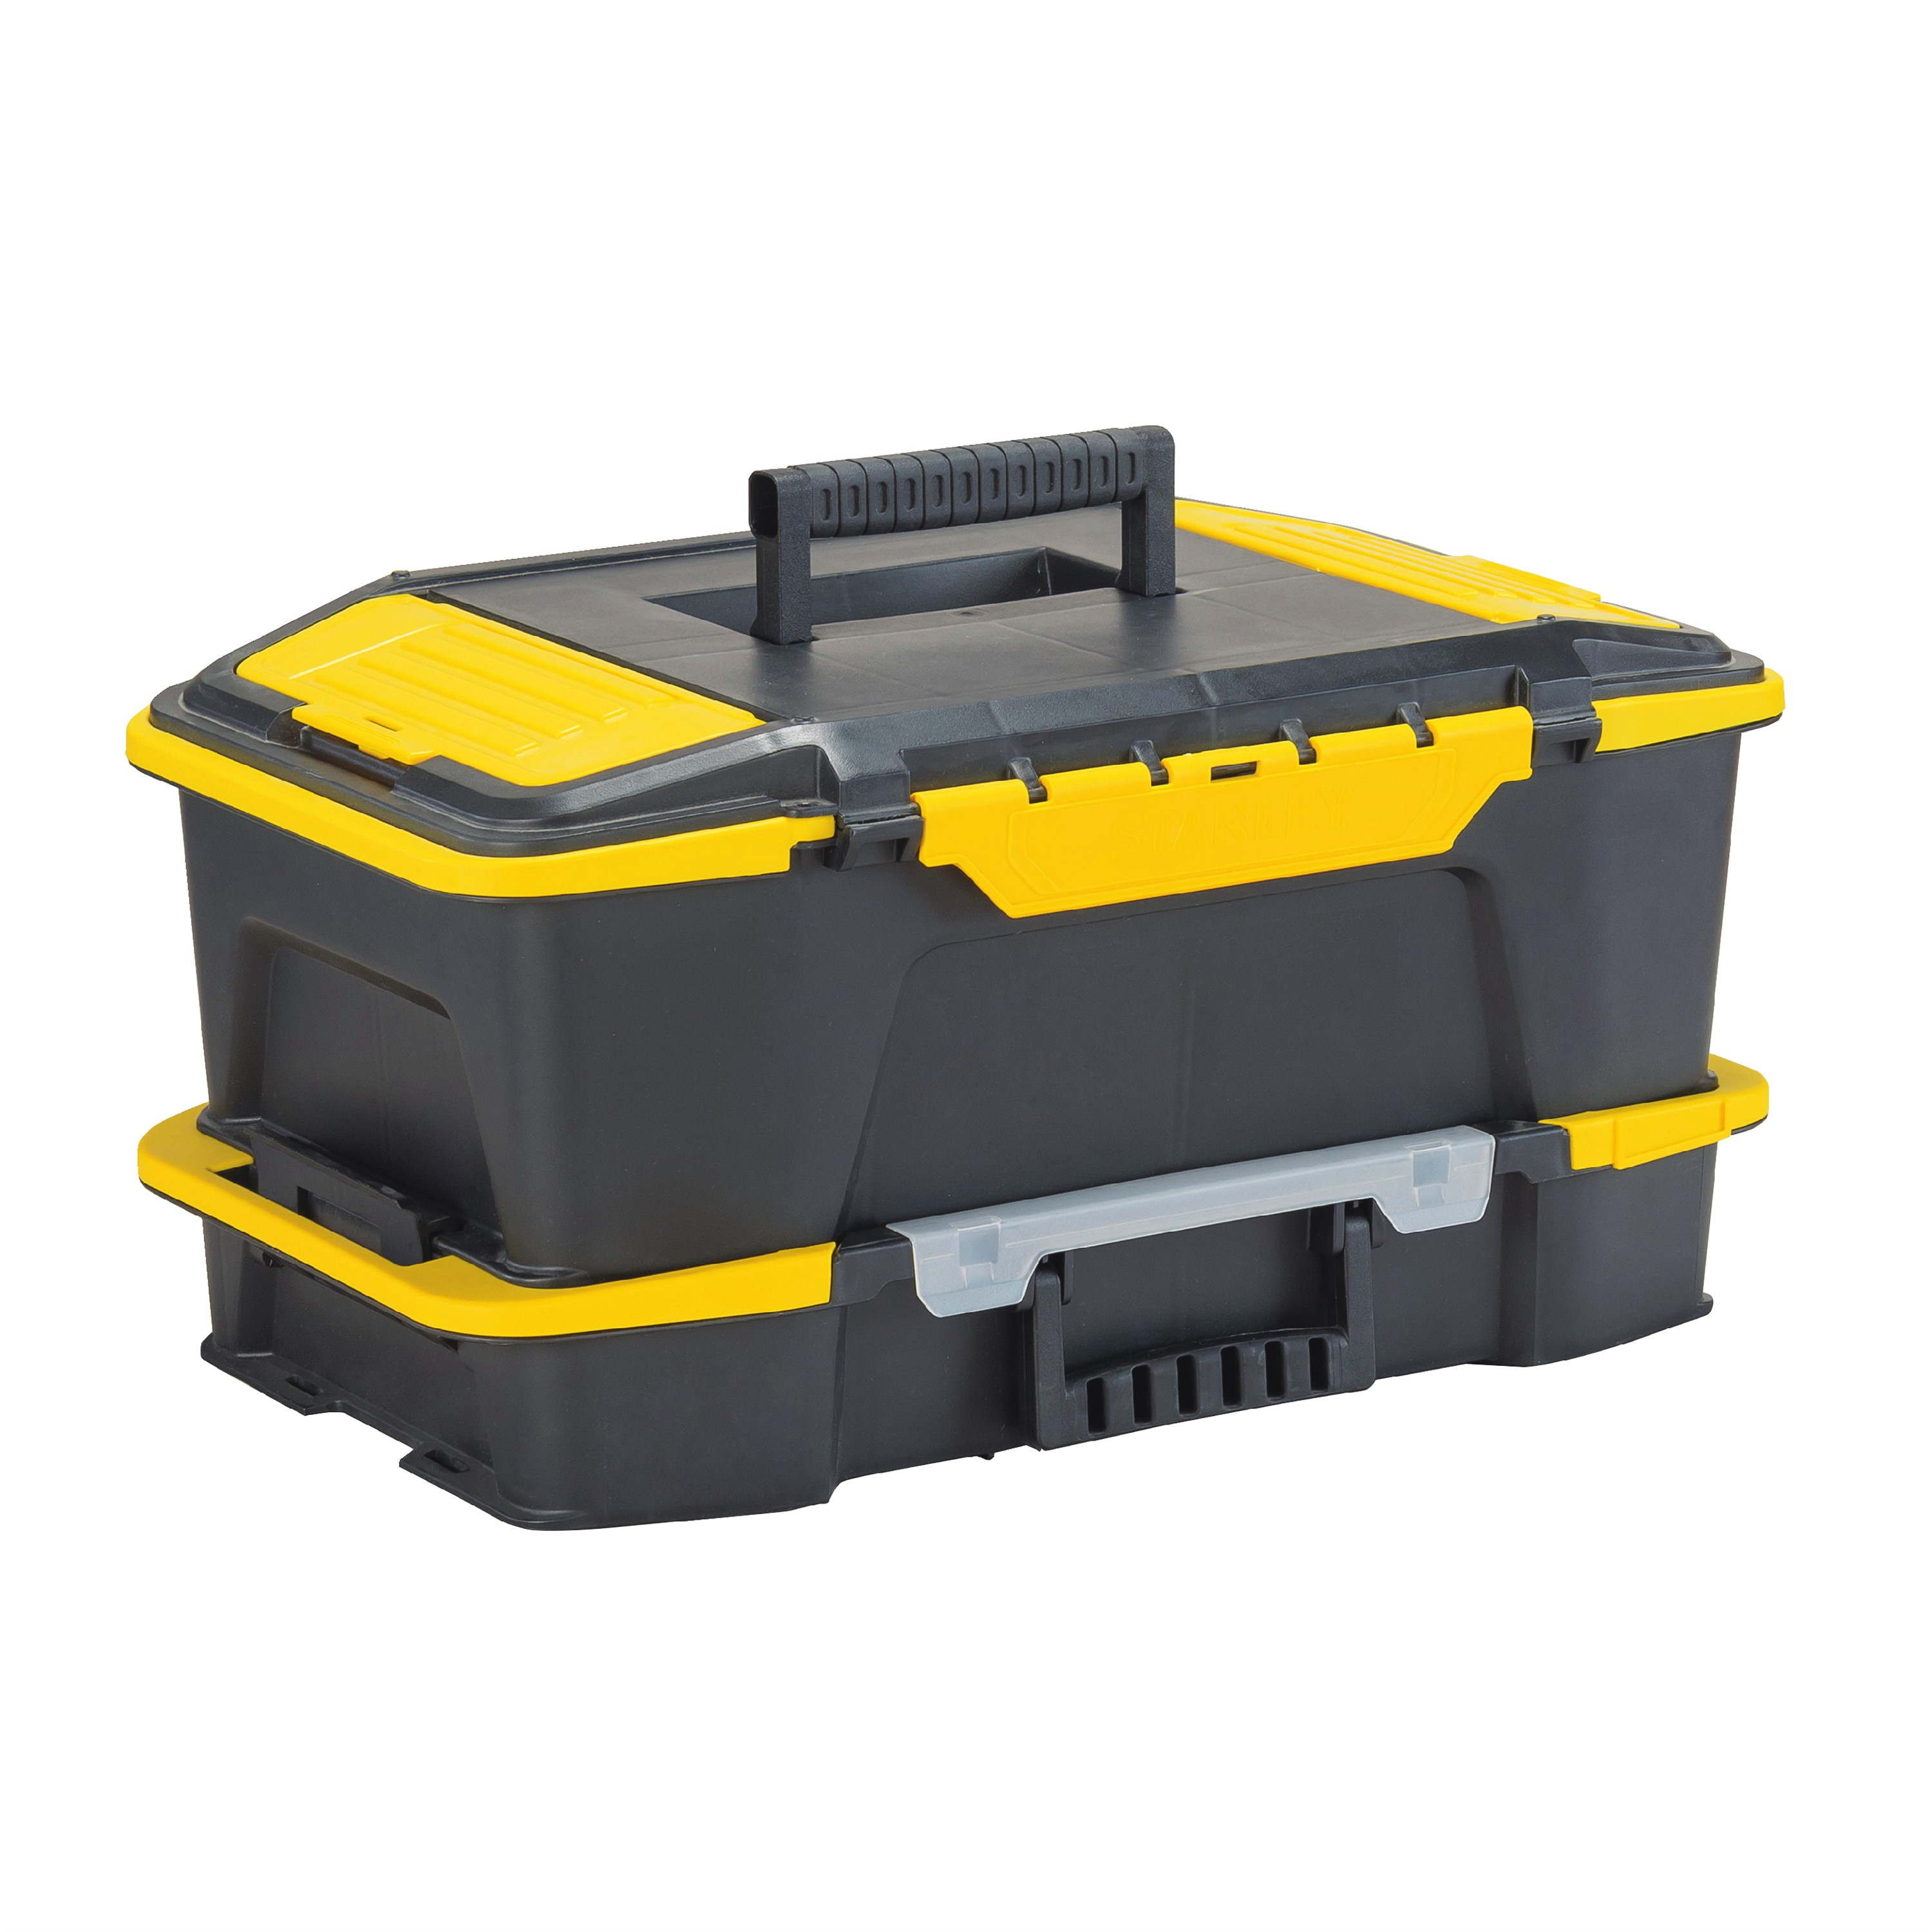 STANLEY STST19900 19-Inch Click-N-Connect 2-in-1 Toolbox